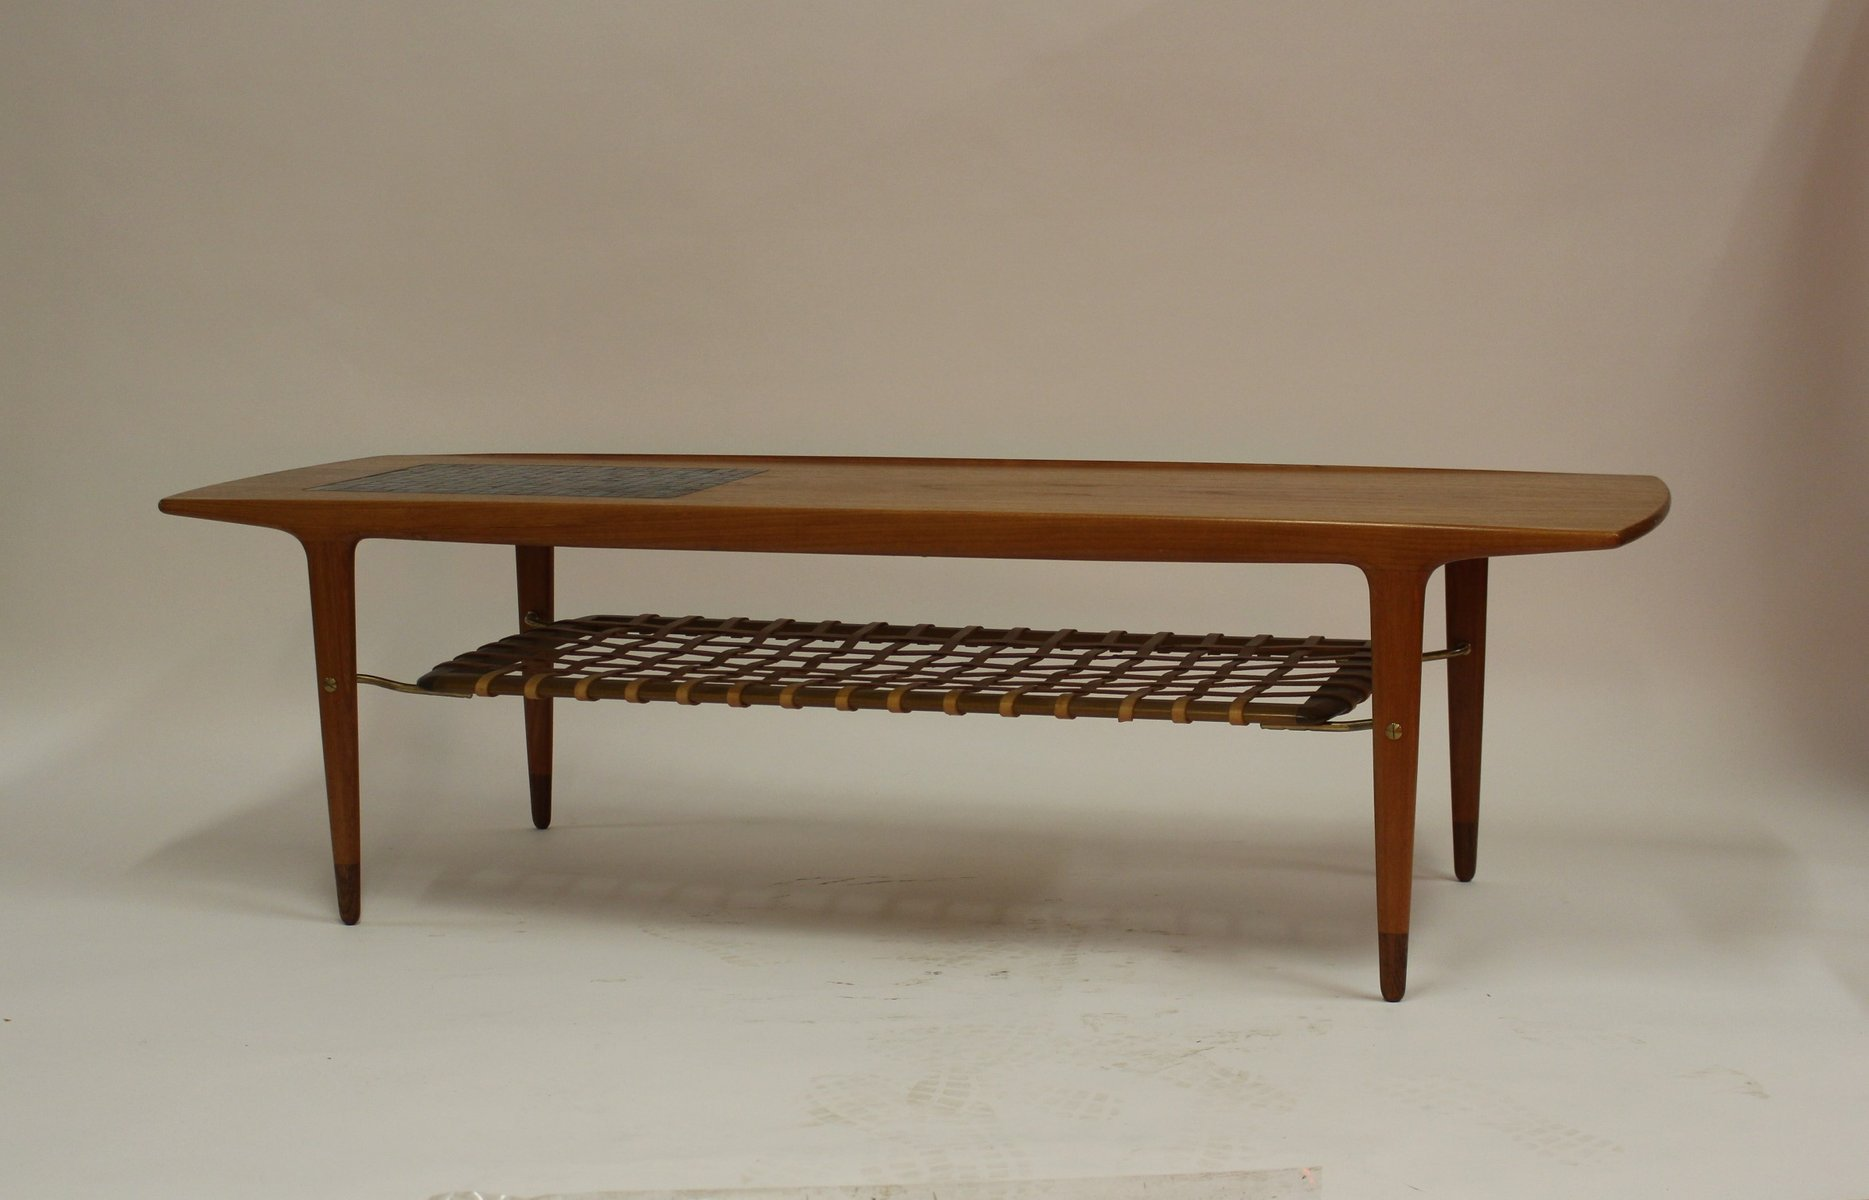 Vintage Danish Teak Coffee Table with Ceramic Tiles and ...